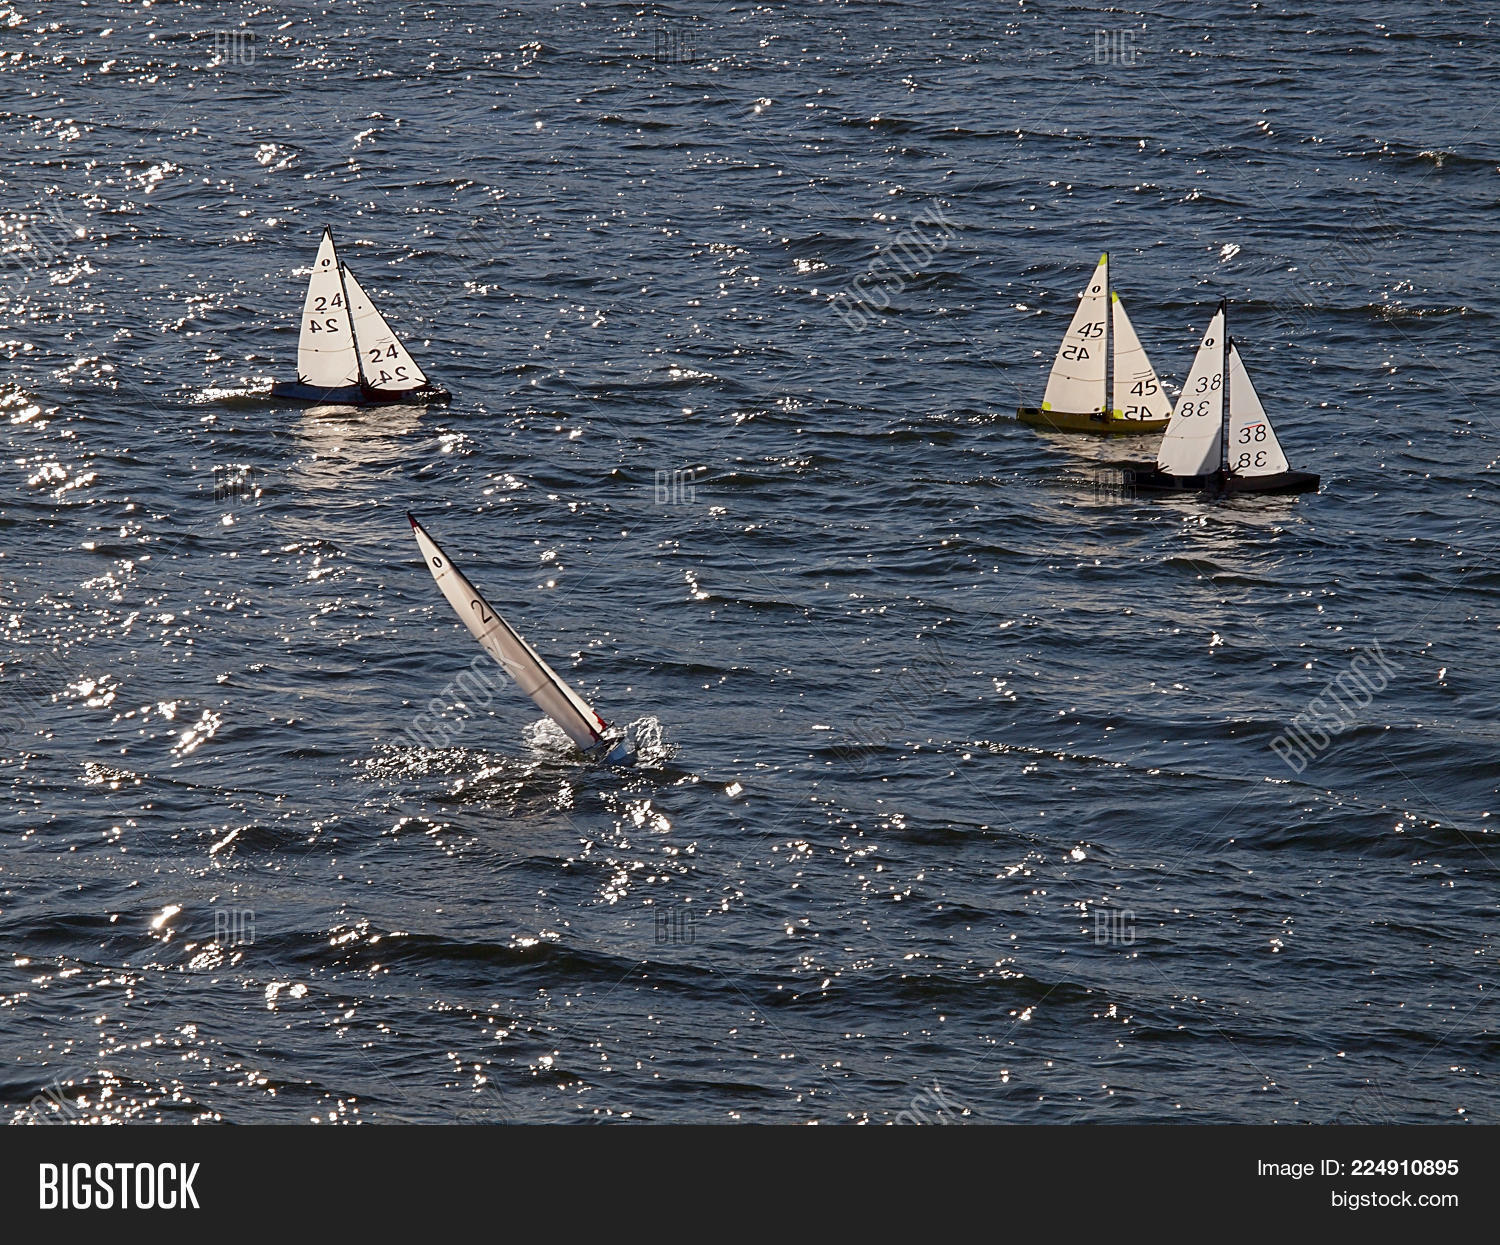 Small Sailboats On Big Image & Photo (Free Trial) | Bigstock